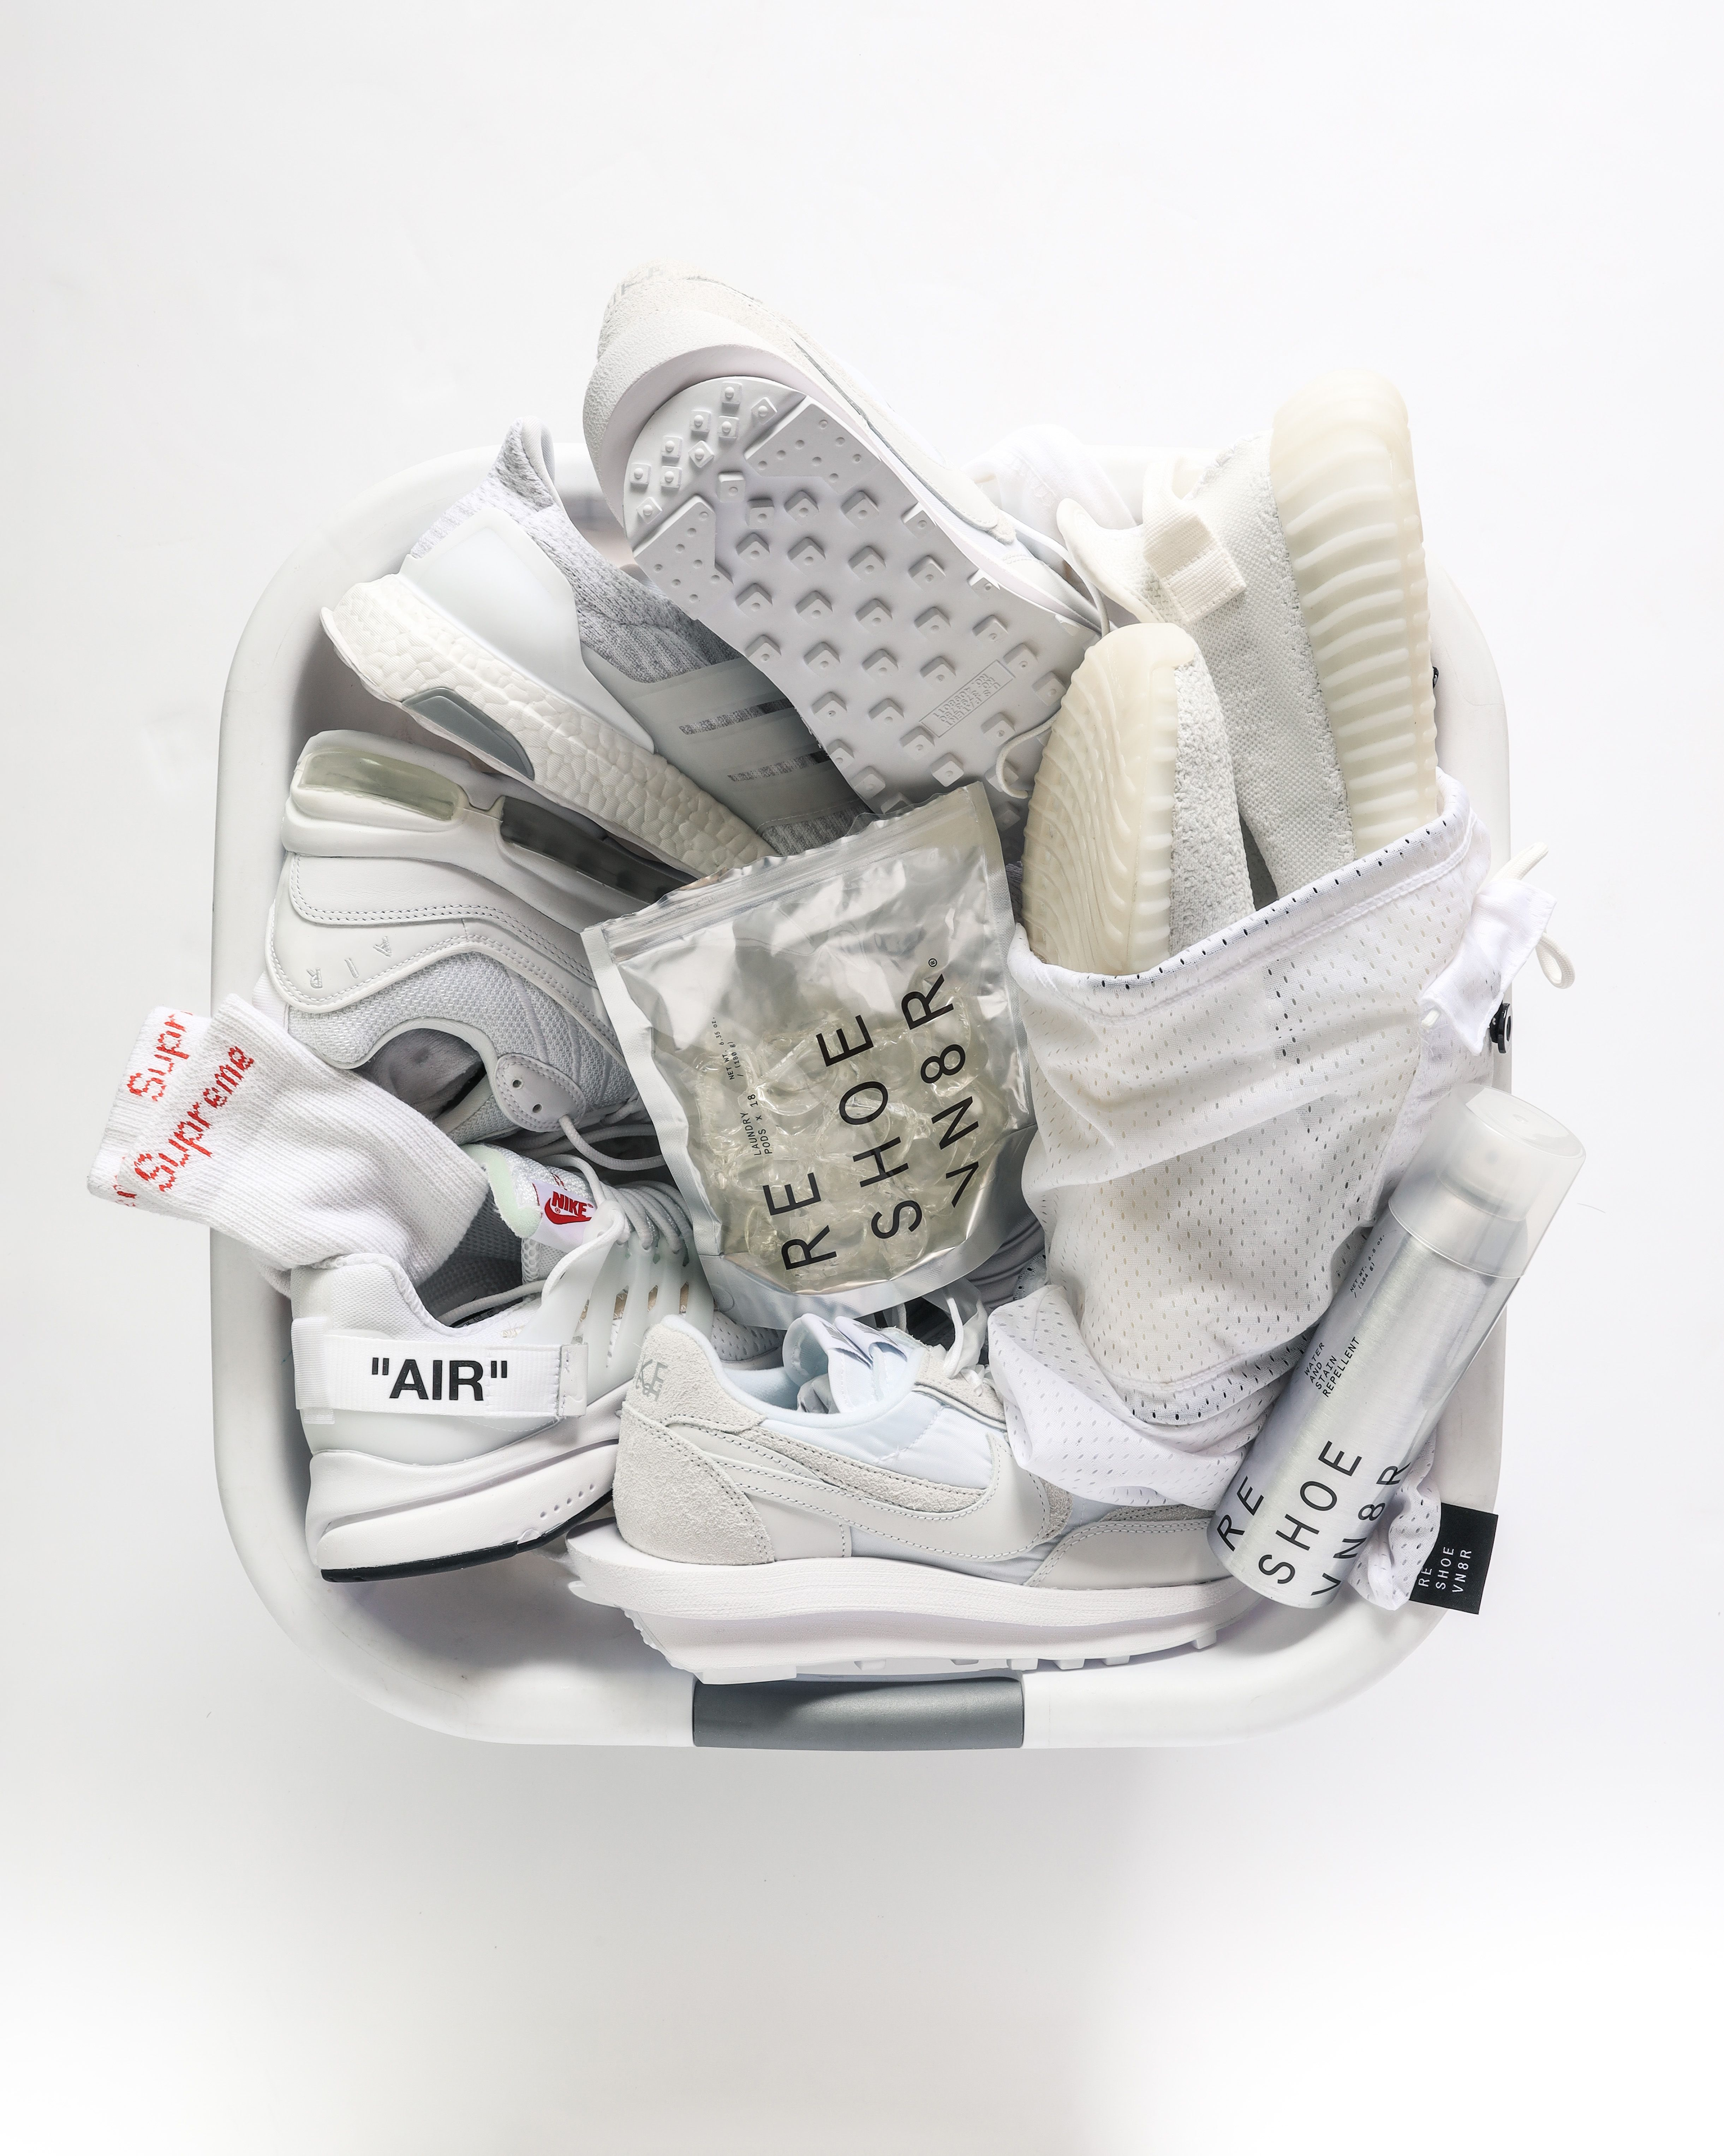 Sneaker Laundry Detergent In 2020 Laundry Detergent Laundry